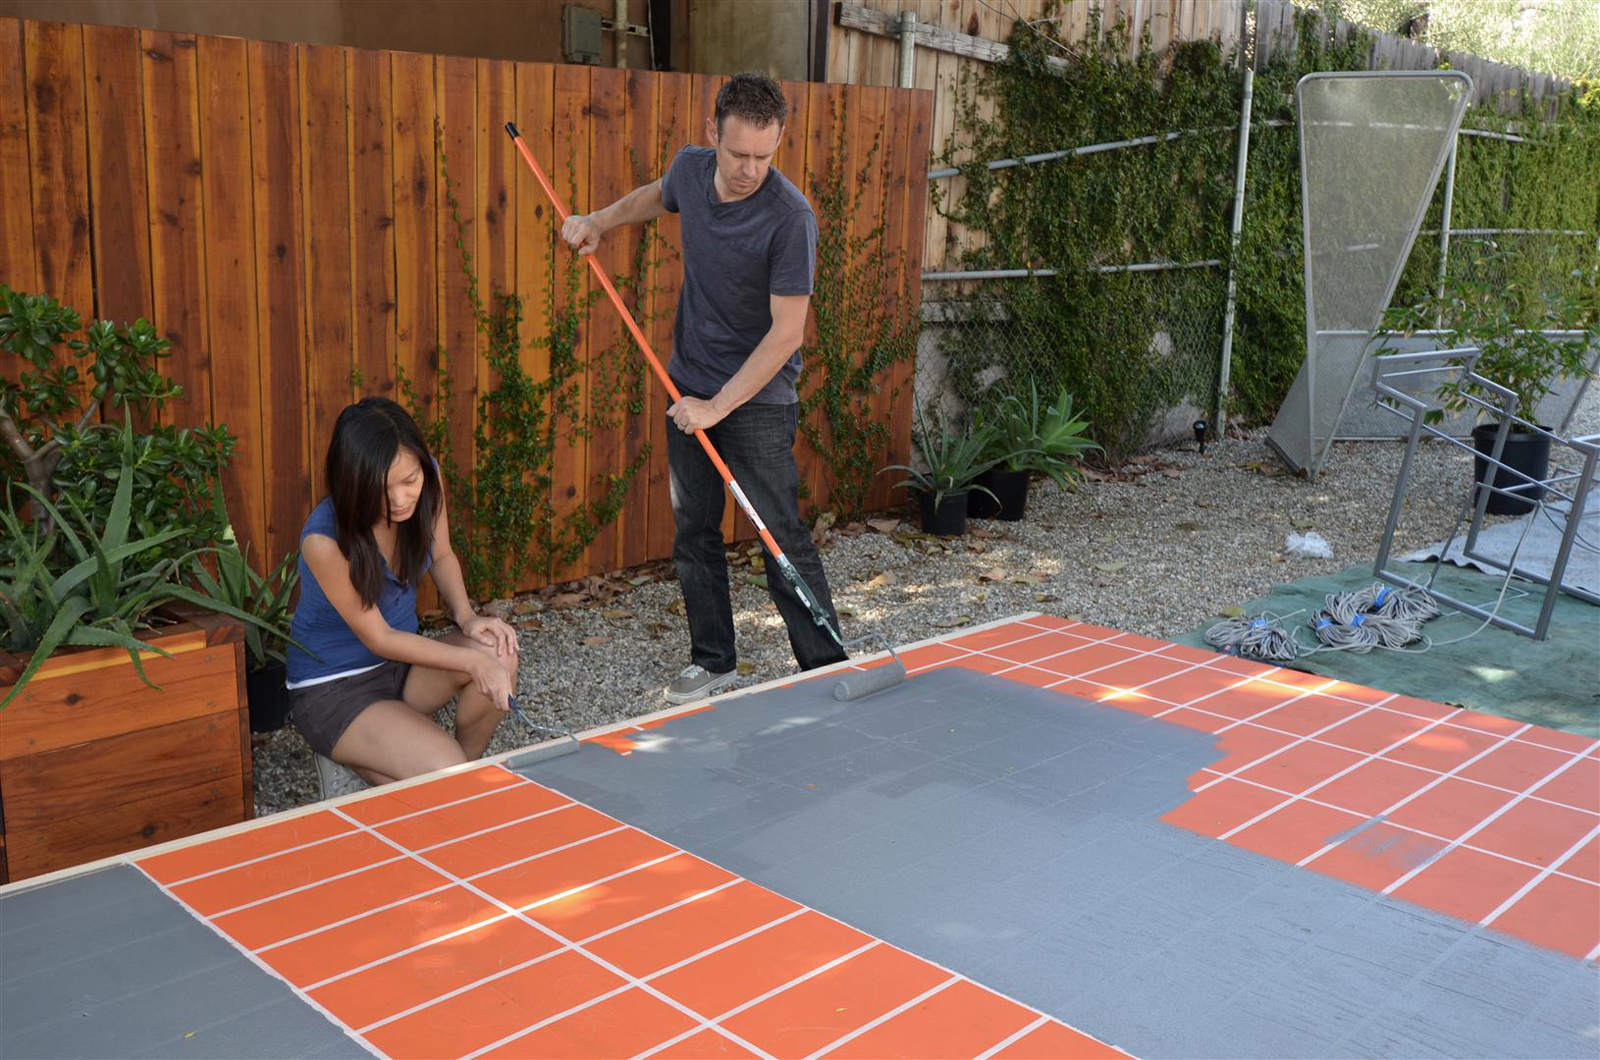 Taping the grid on the platform then painting the platform light grey.